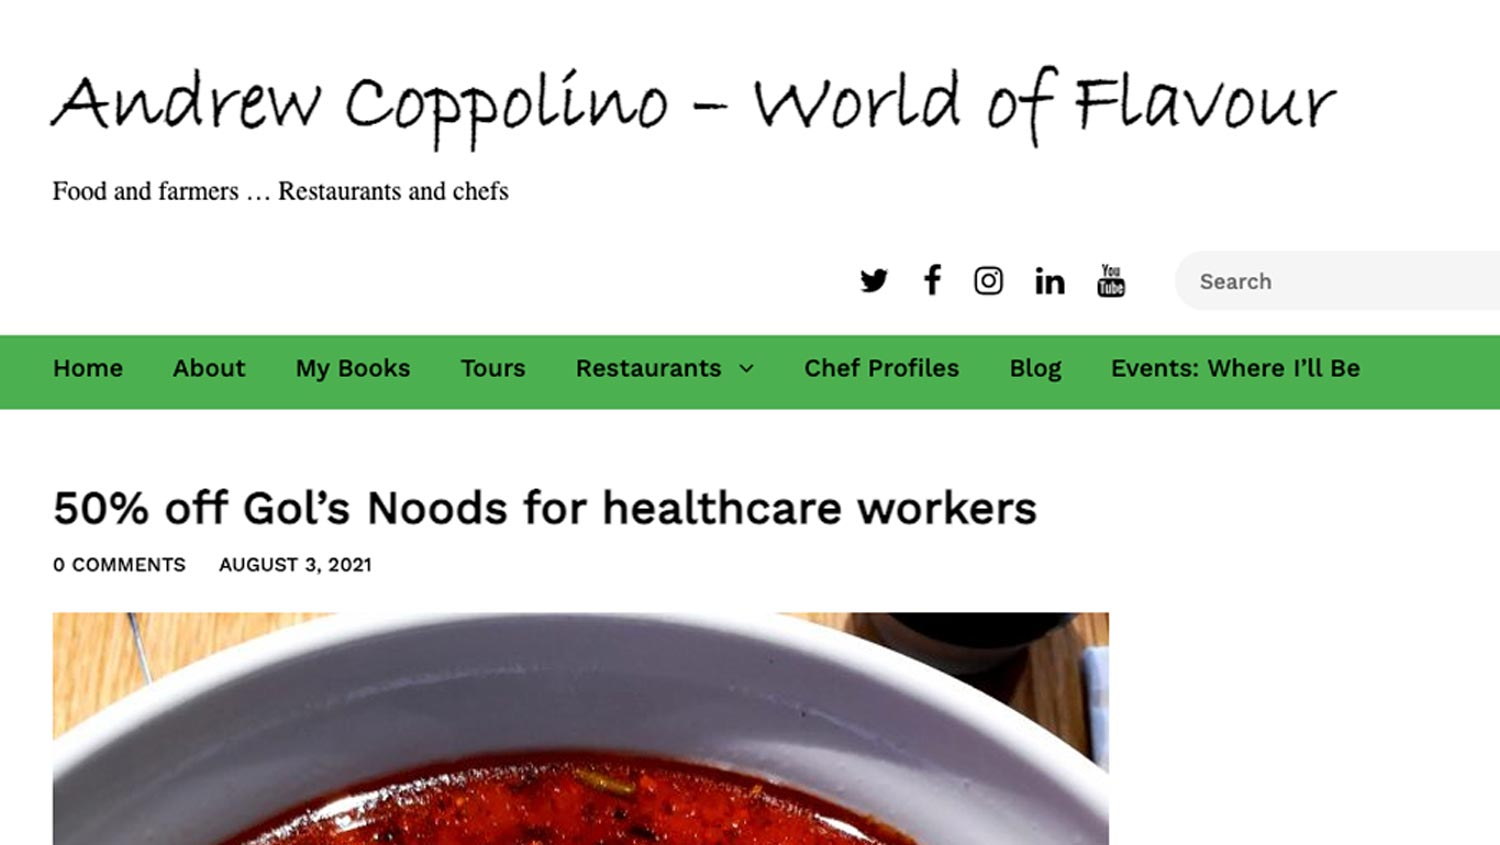 News Coverage from Andrew Coppolino — World of Flavour